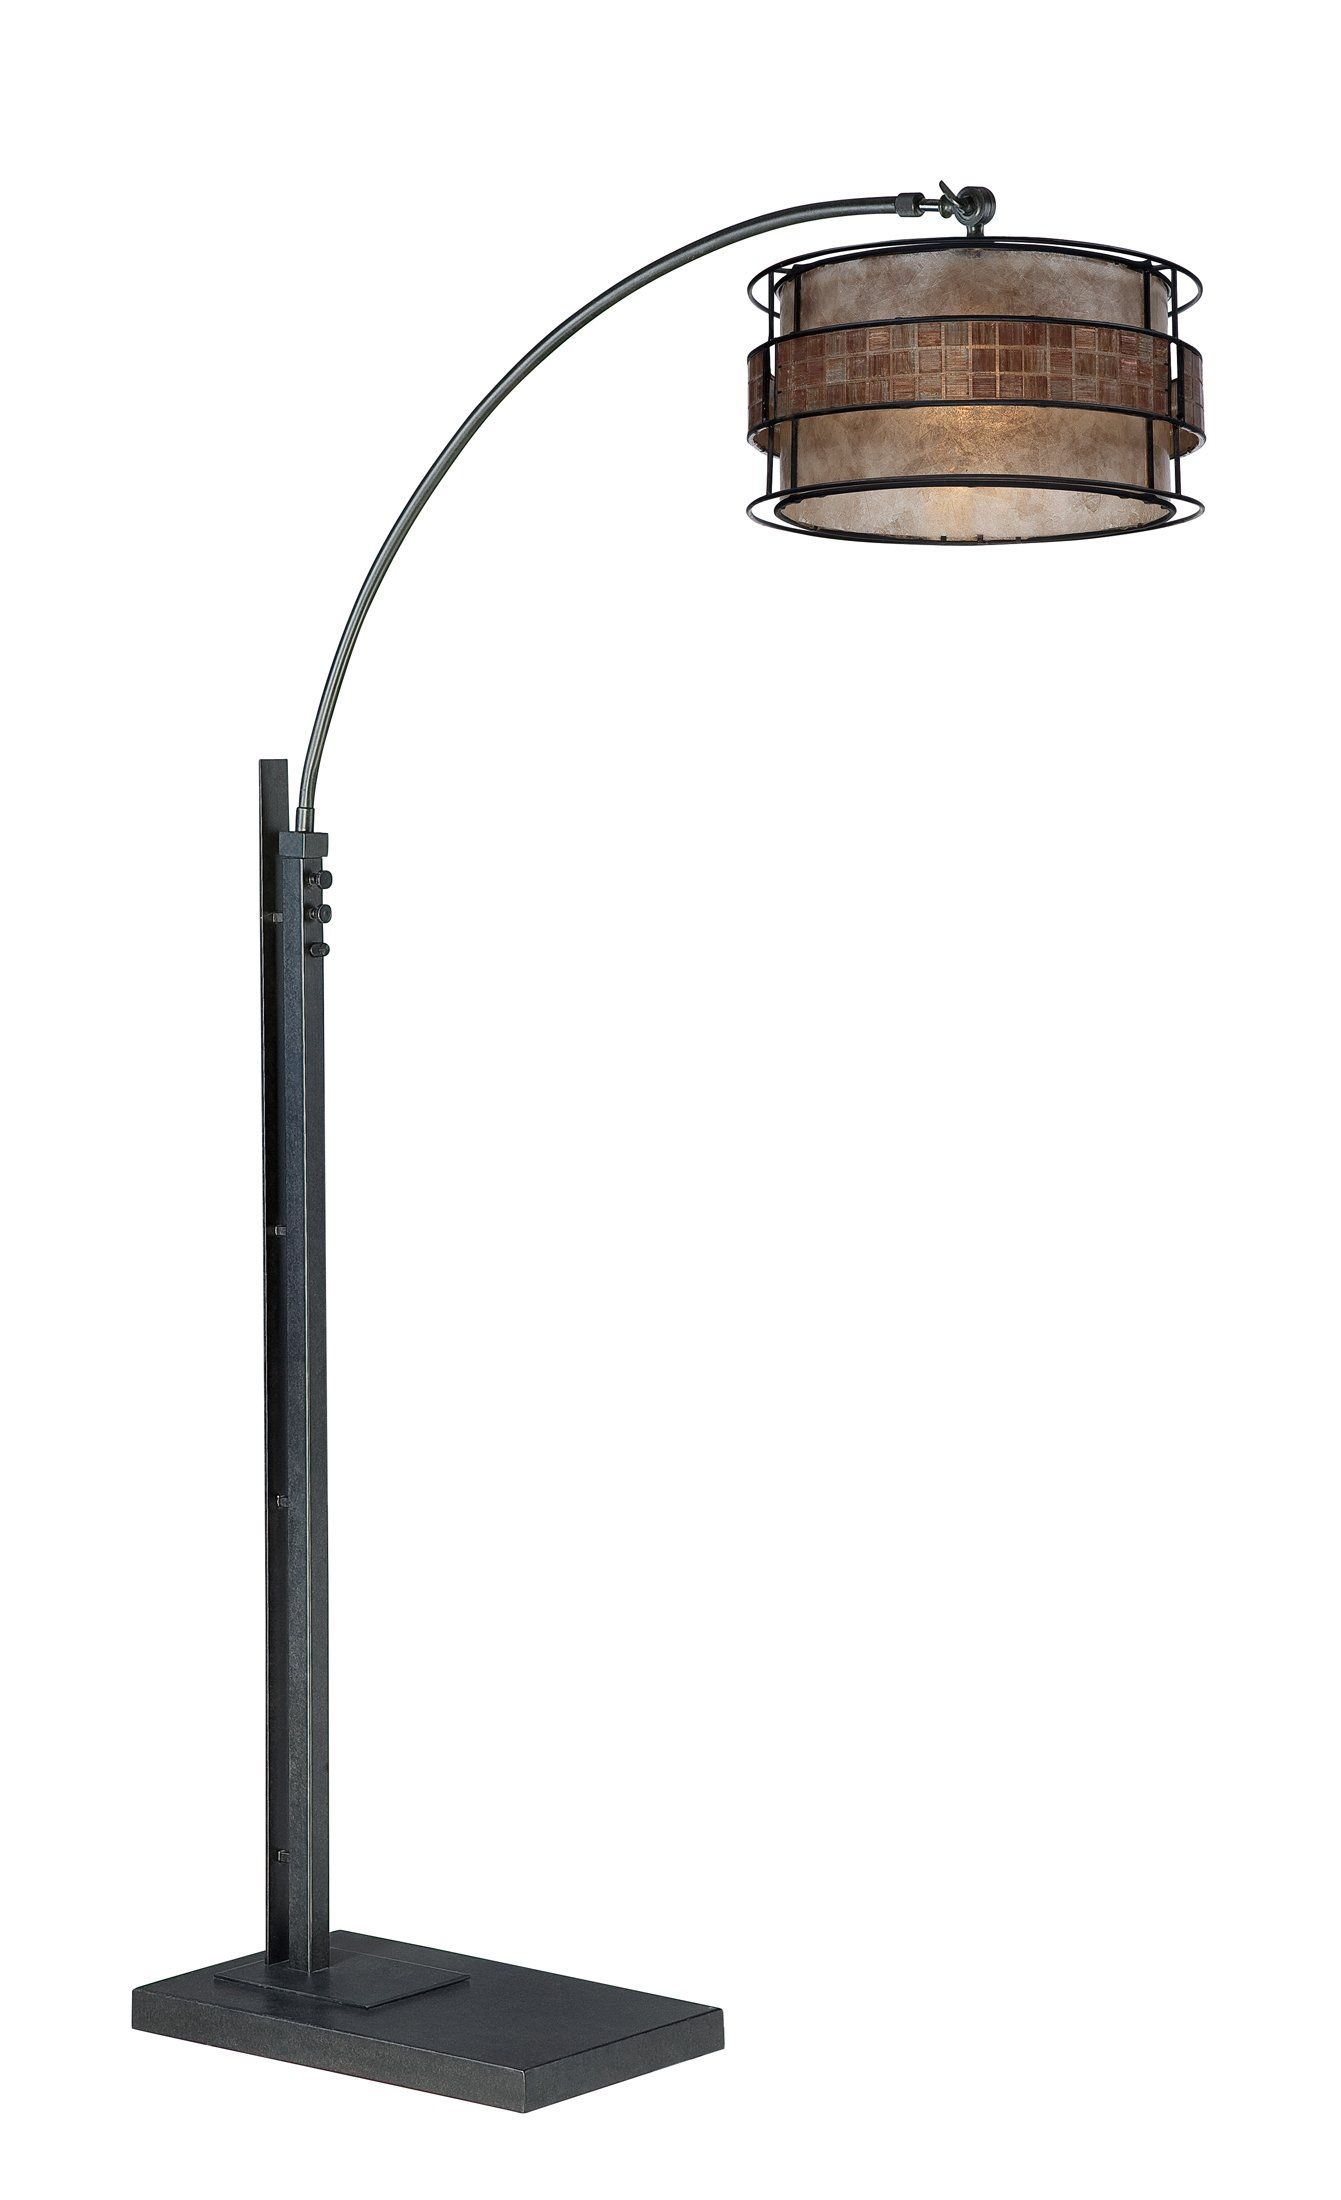 """Quoizel Q4574A Mica Light Arc Floor Lamp. Product Design Style: Contemporary. Product Finish: None Specified. Product Electical: 1-150W A21 Medium Base. Product Shade: Mica - 16"""" x 8.5"""" Moasic Tile Mica Shade. Product Warranty: Lifetime Warranty on all Electrical Parts."""